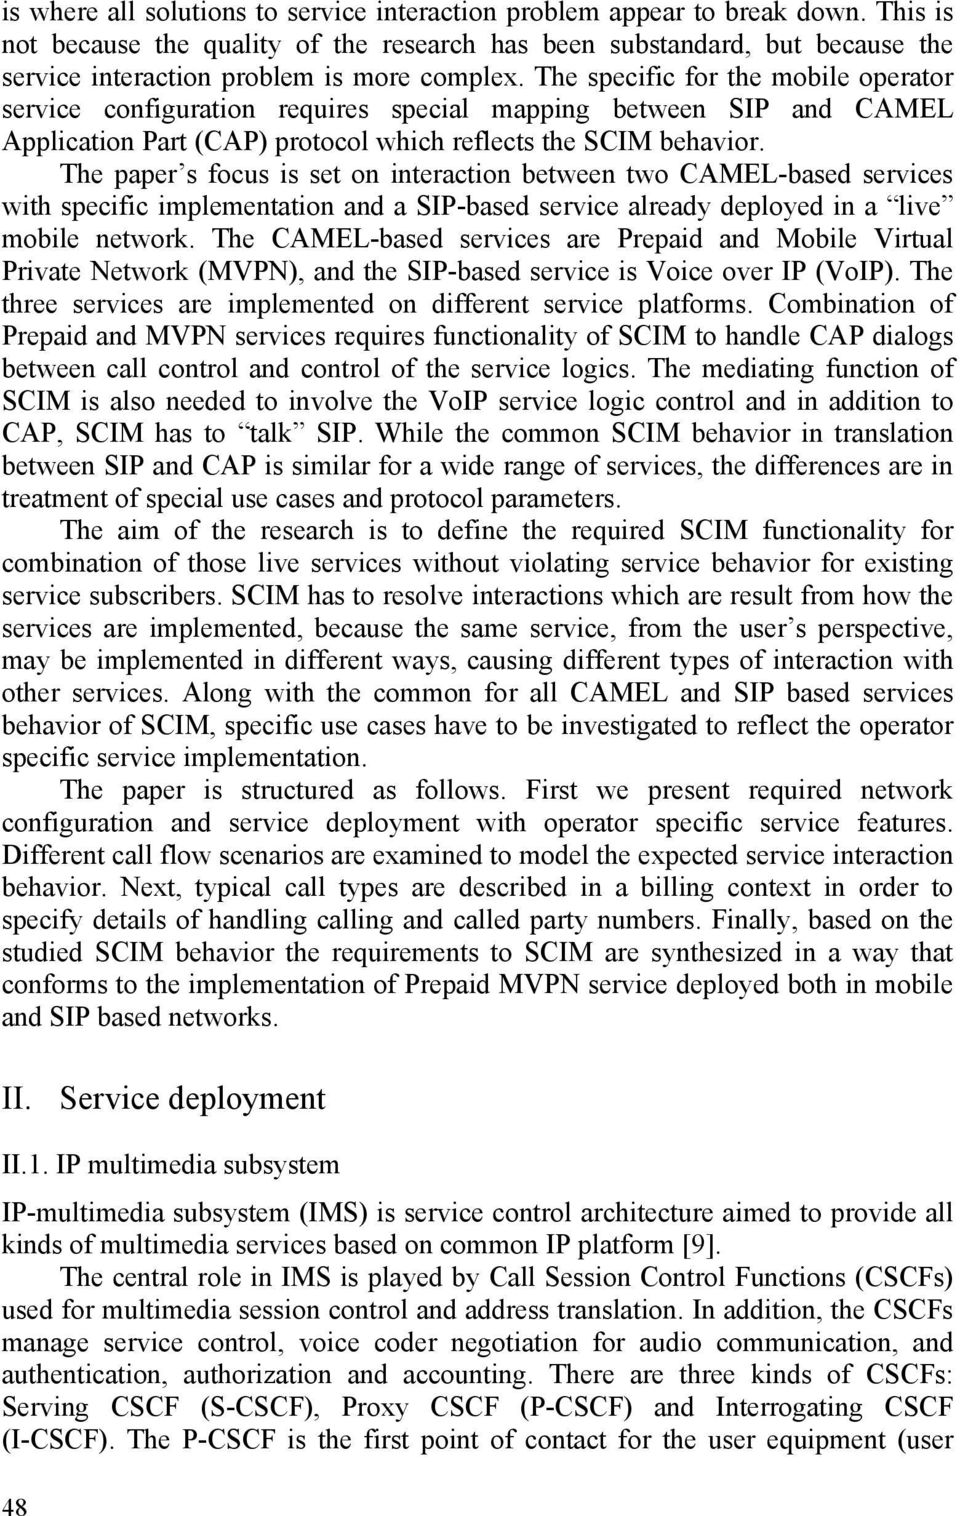 The specific for the mobile operator service configuration requires special mapping between SIP and CAMEL Application Part (CAP) protocol which reflects the SCIM behavior.